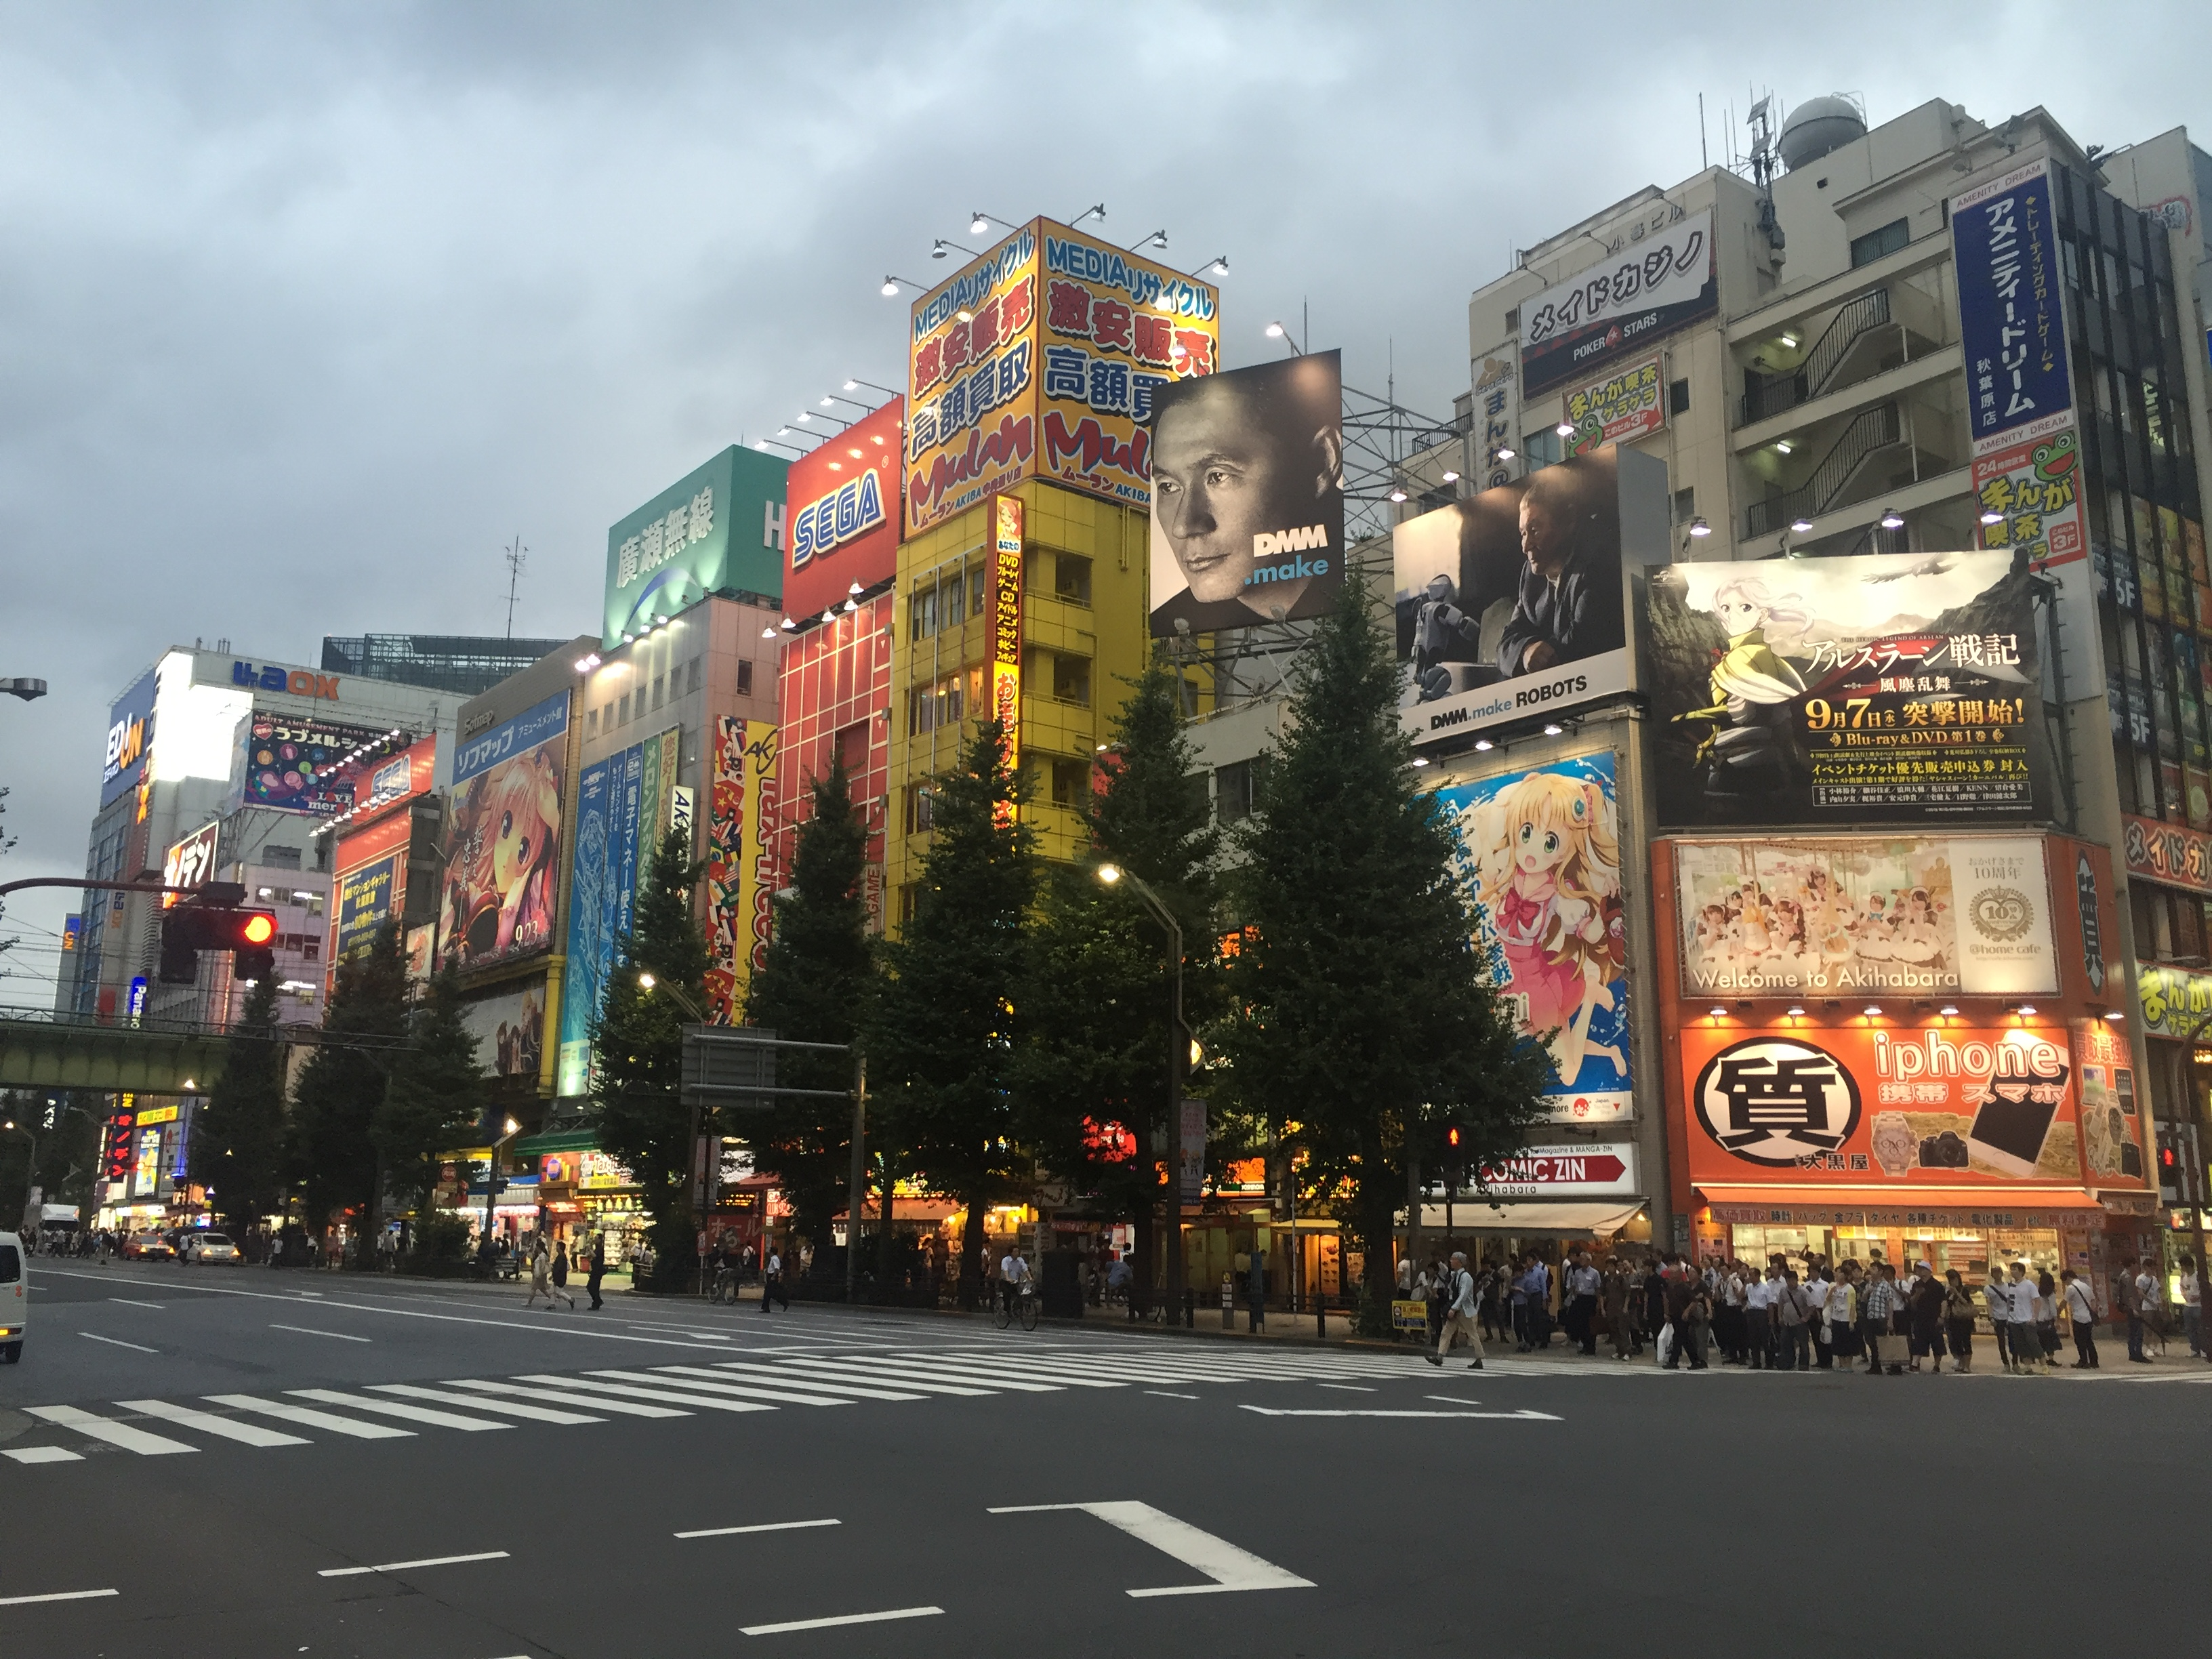 Japanophilia, Japanophobia: Considering the Experience of Cultural Difference in Japan